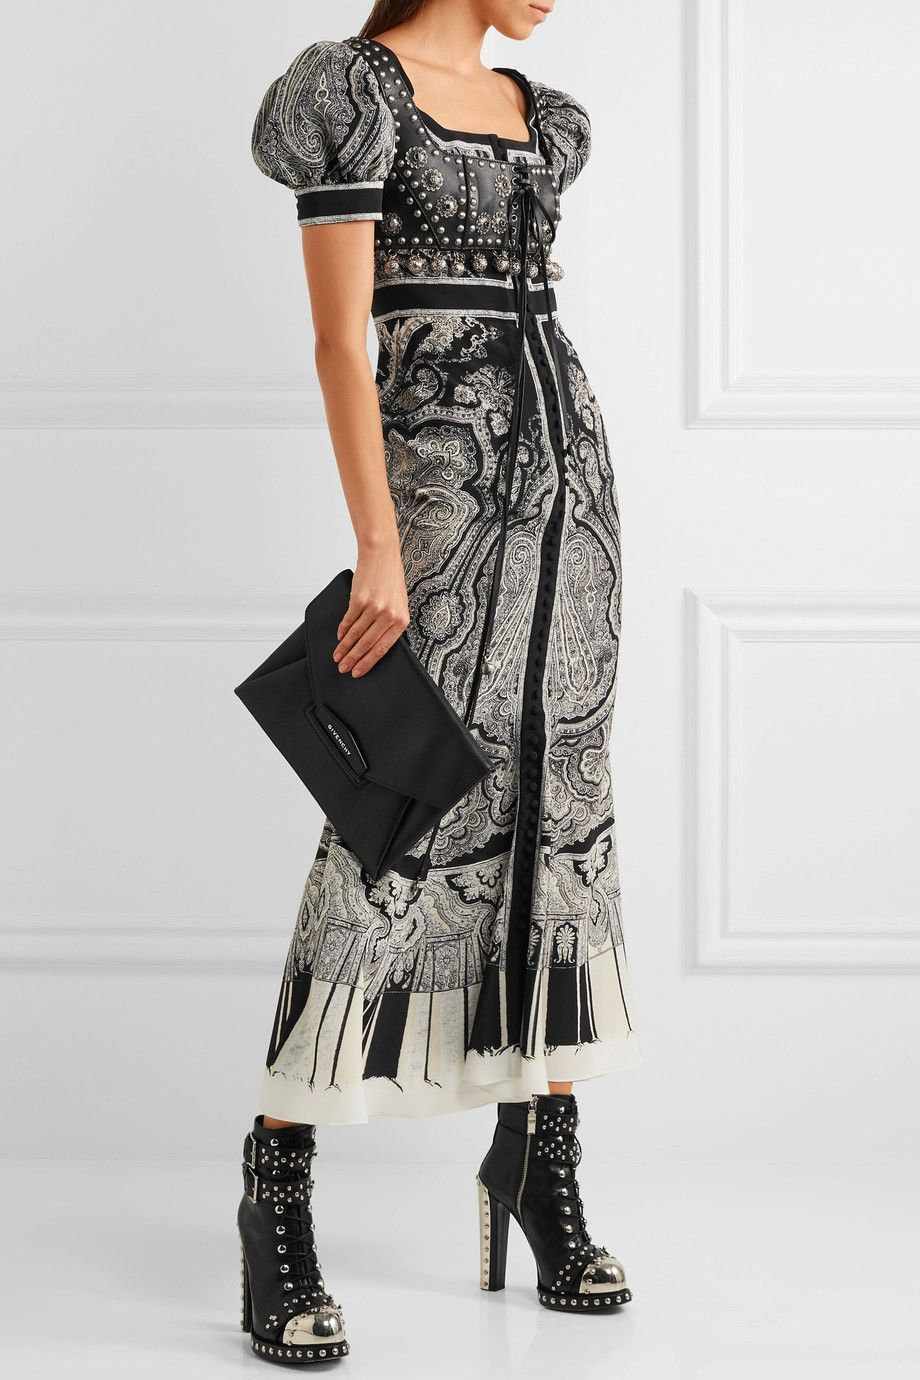 Printed Crepe Midi Dress - Black Alexander McQueen BFoMu